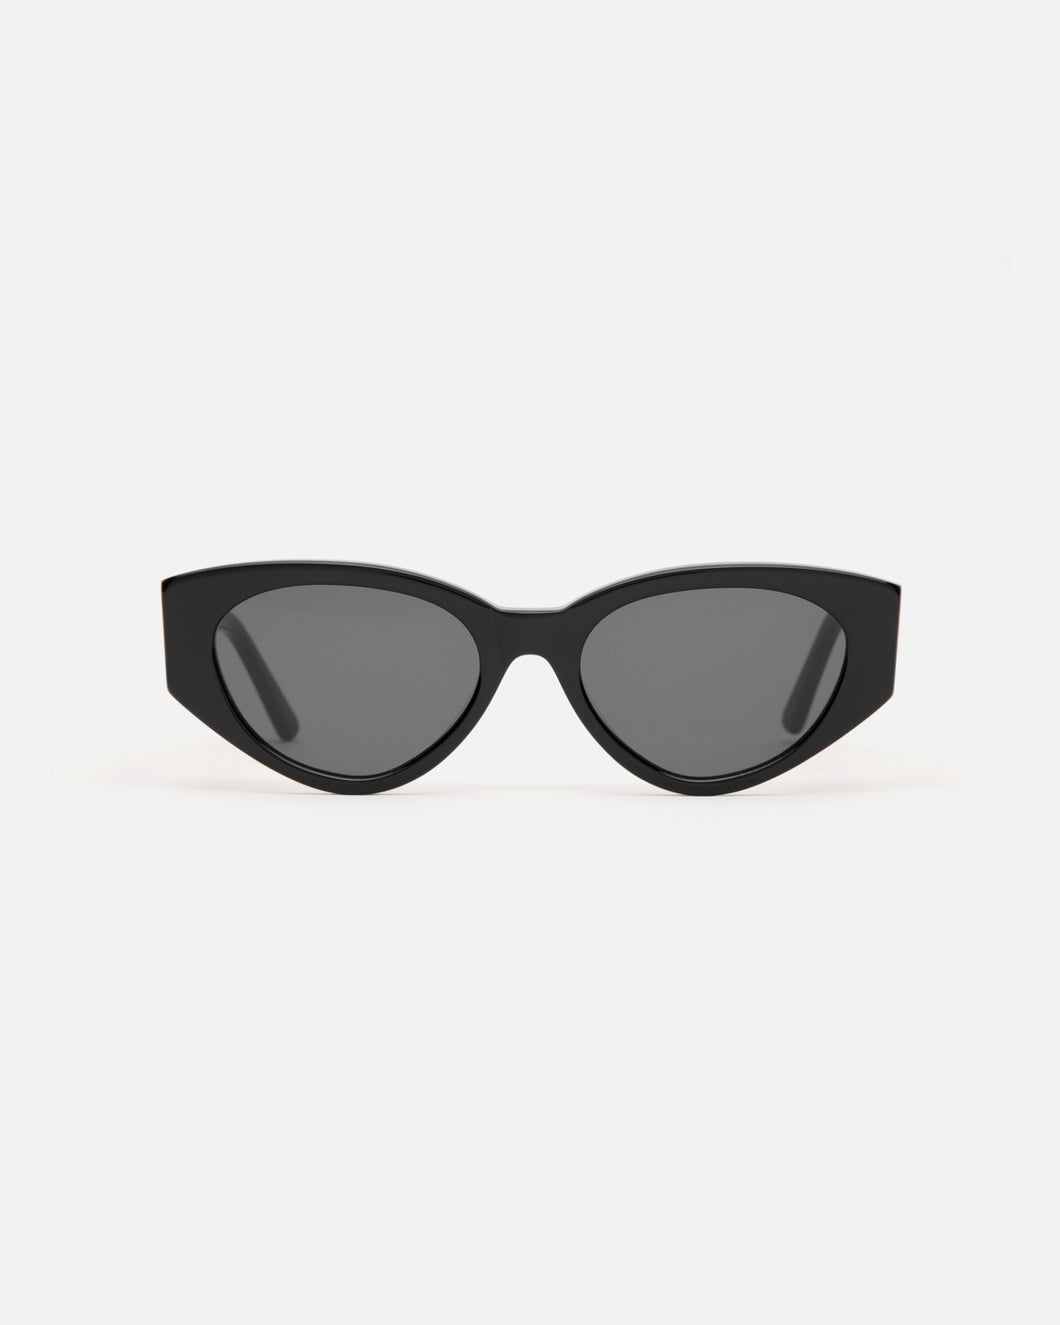 Lu Goldie Giselle oversize Sunglasses in black acetate with black lenses, front